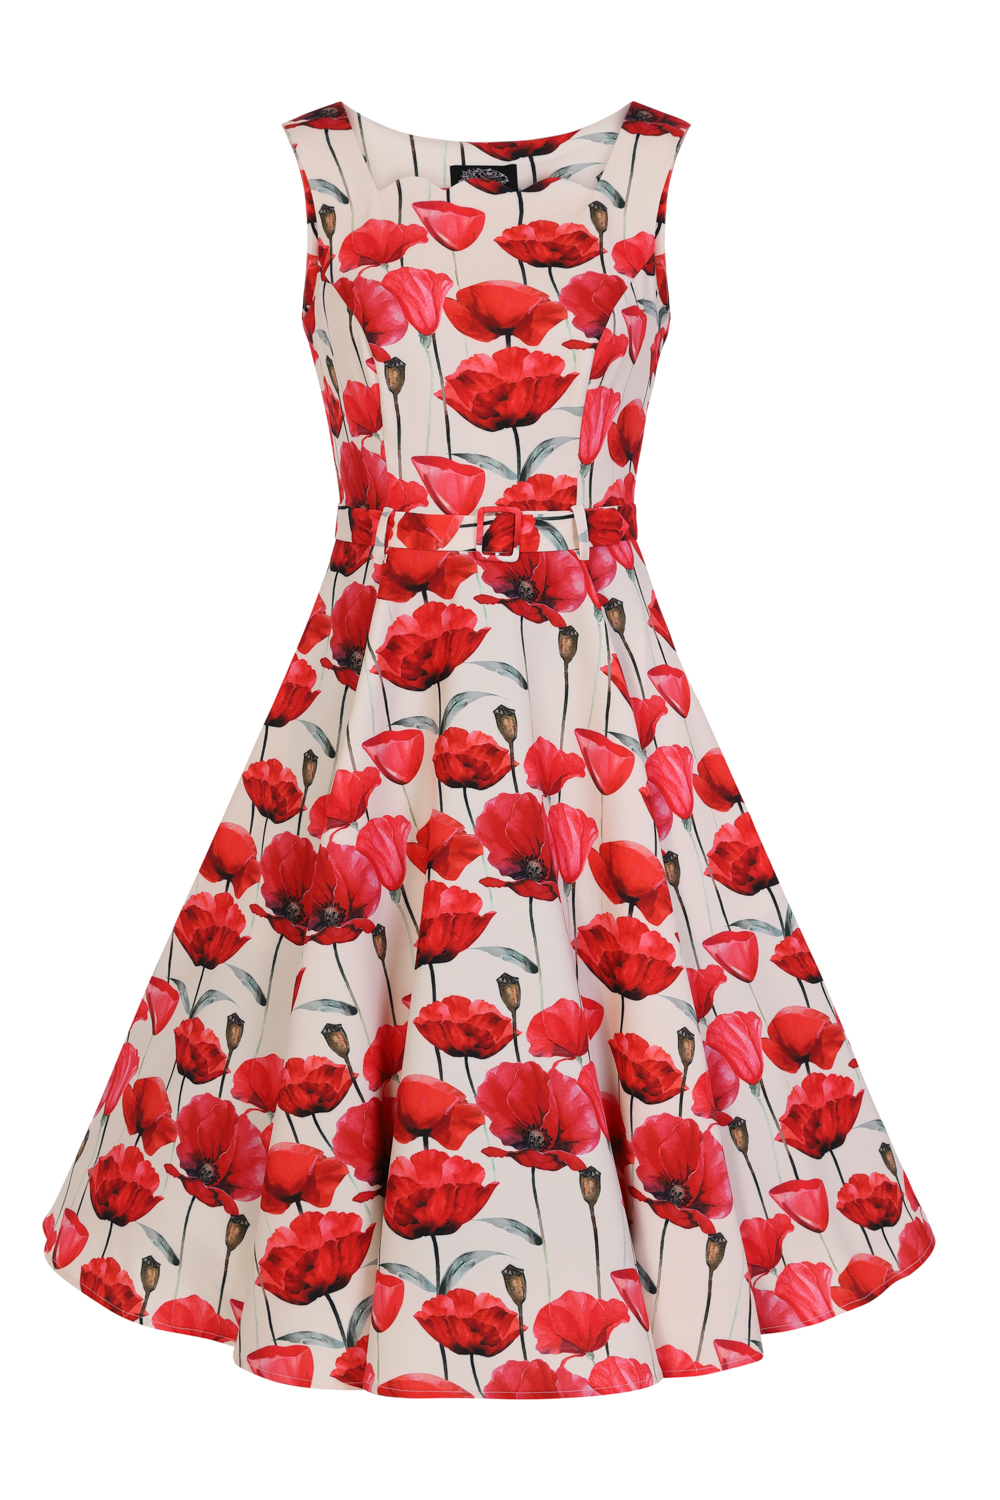 Poppy Red Floral 1950s Style Dress 8